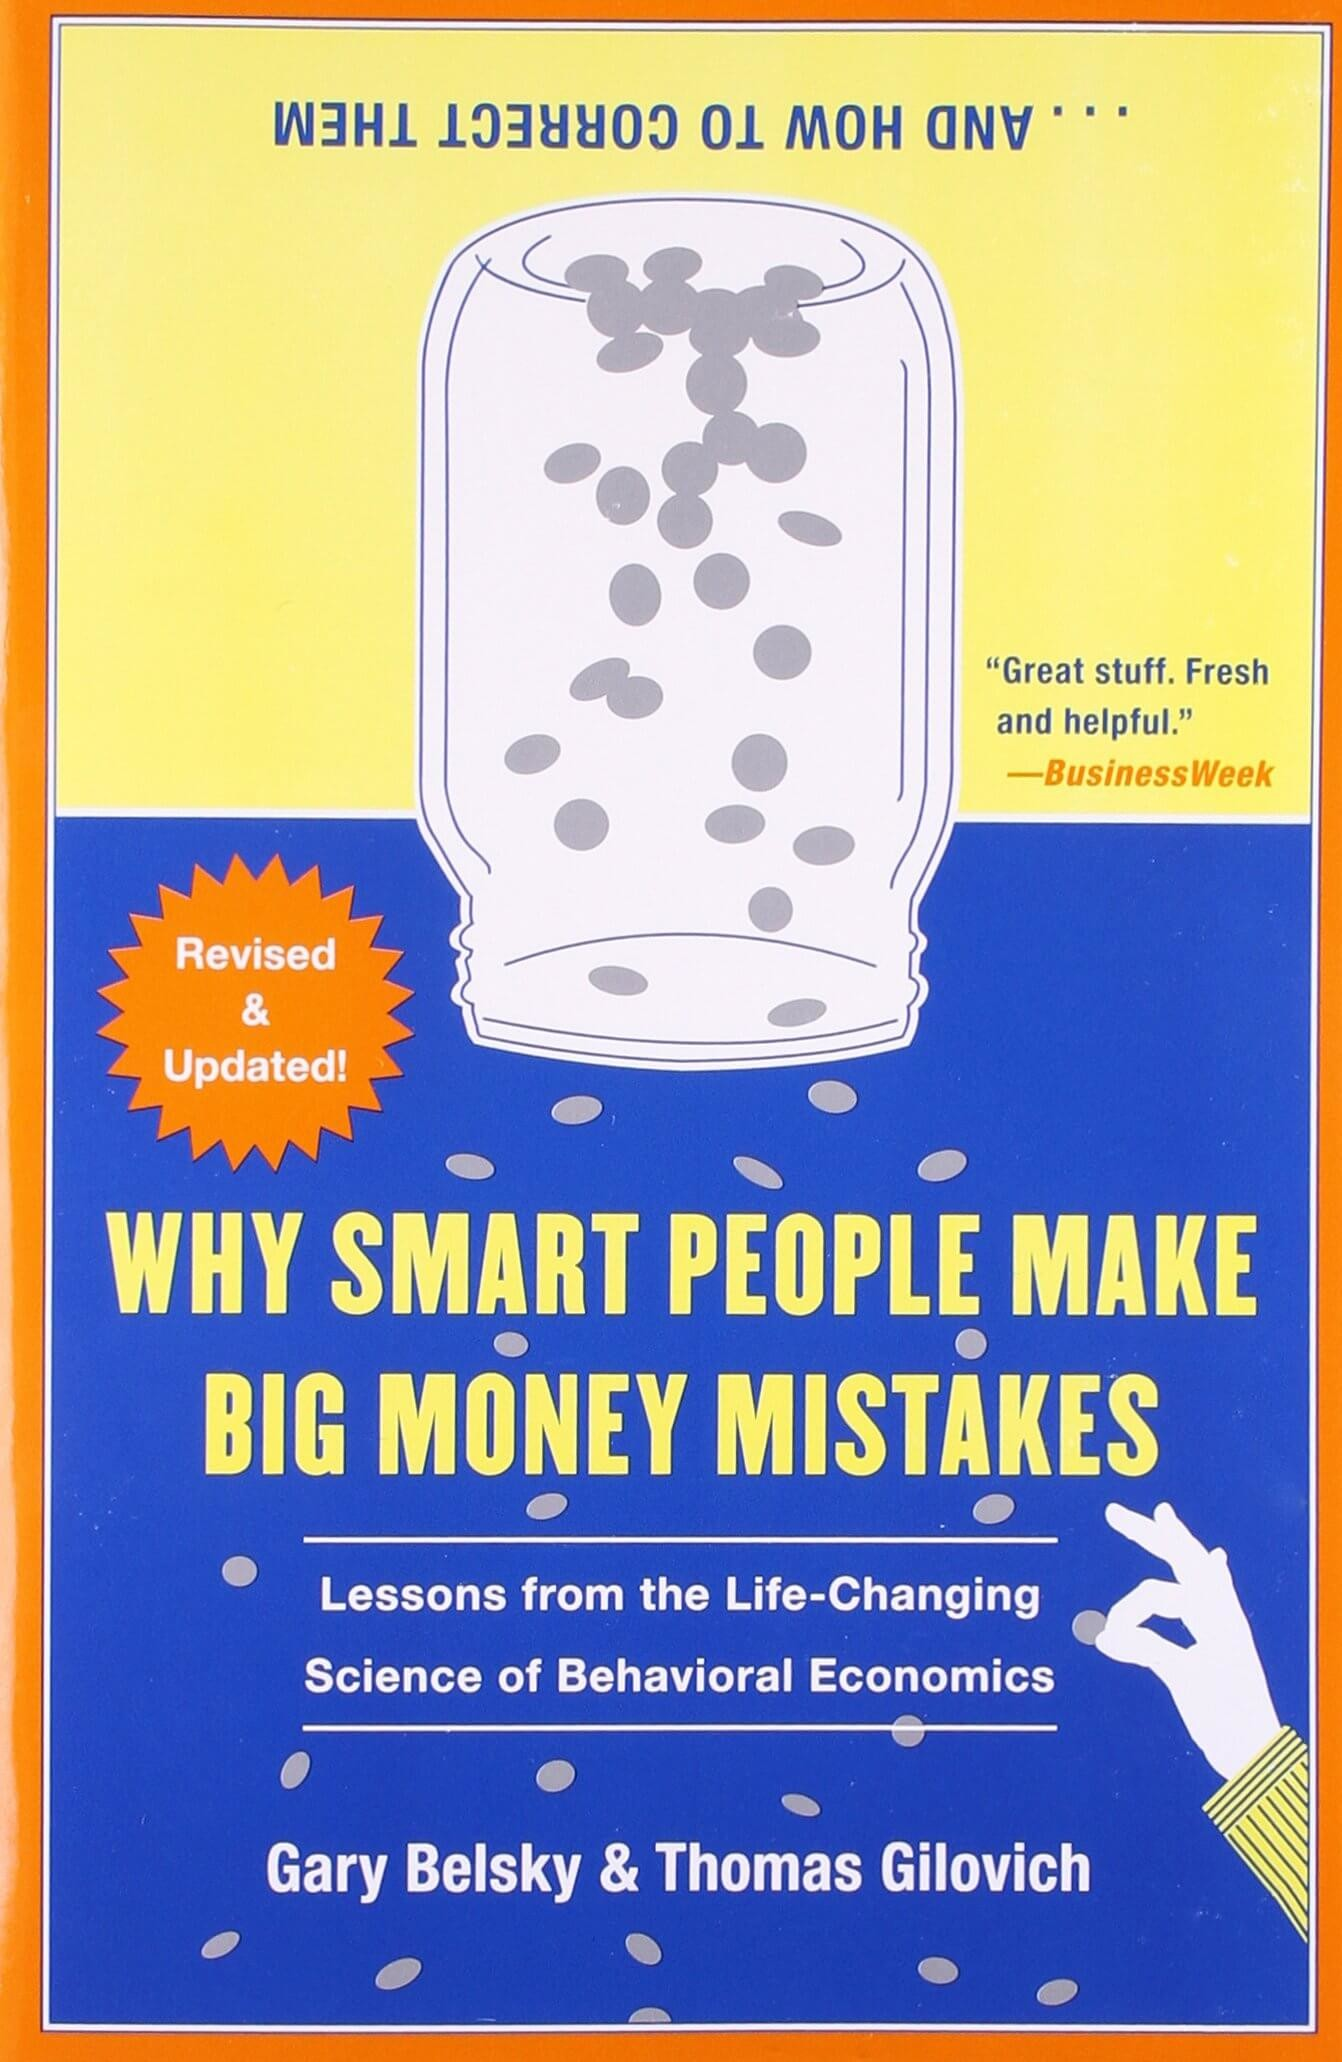 why smart people make big money mistakes and how to correct them kitabı